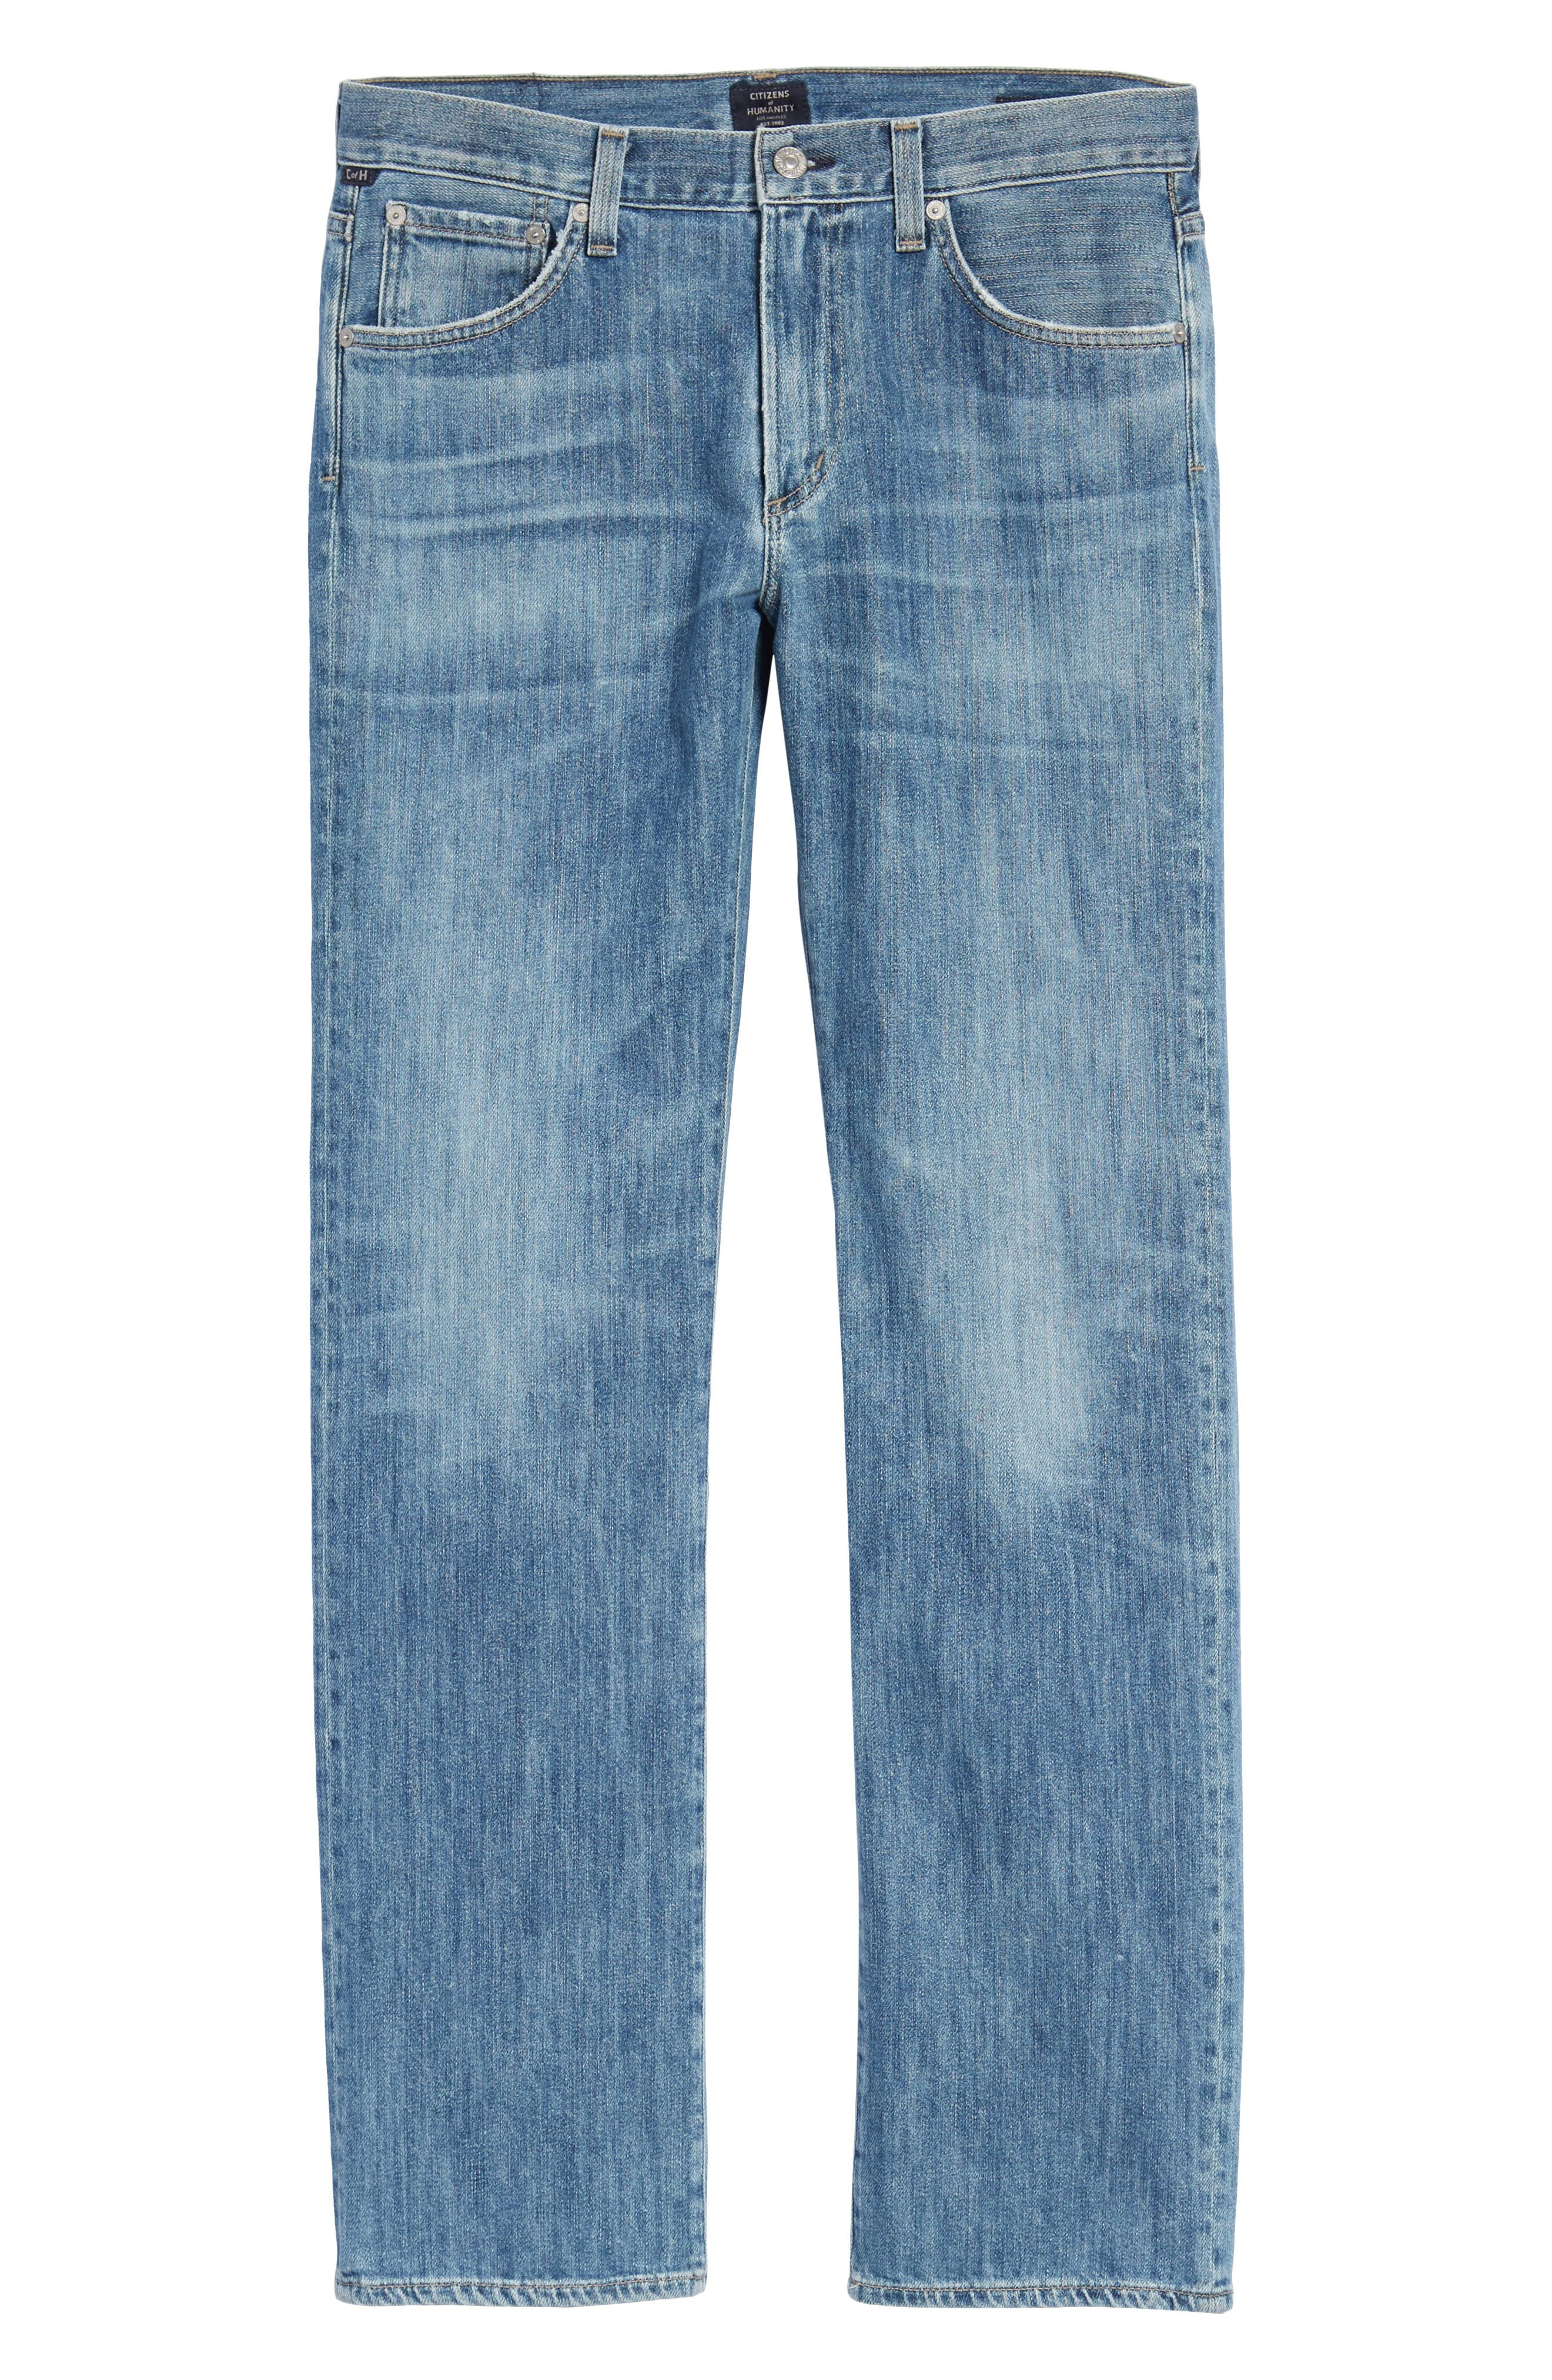 CITIZENS OF HUMANITY,                             Sid Straight Leg Jeans,                             Alternate thumbnail 6, color,                             456